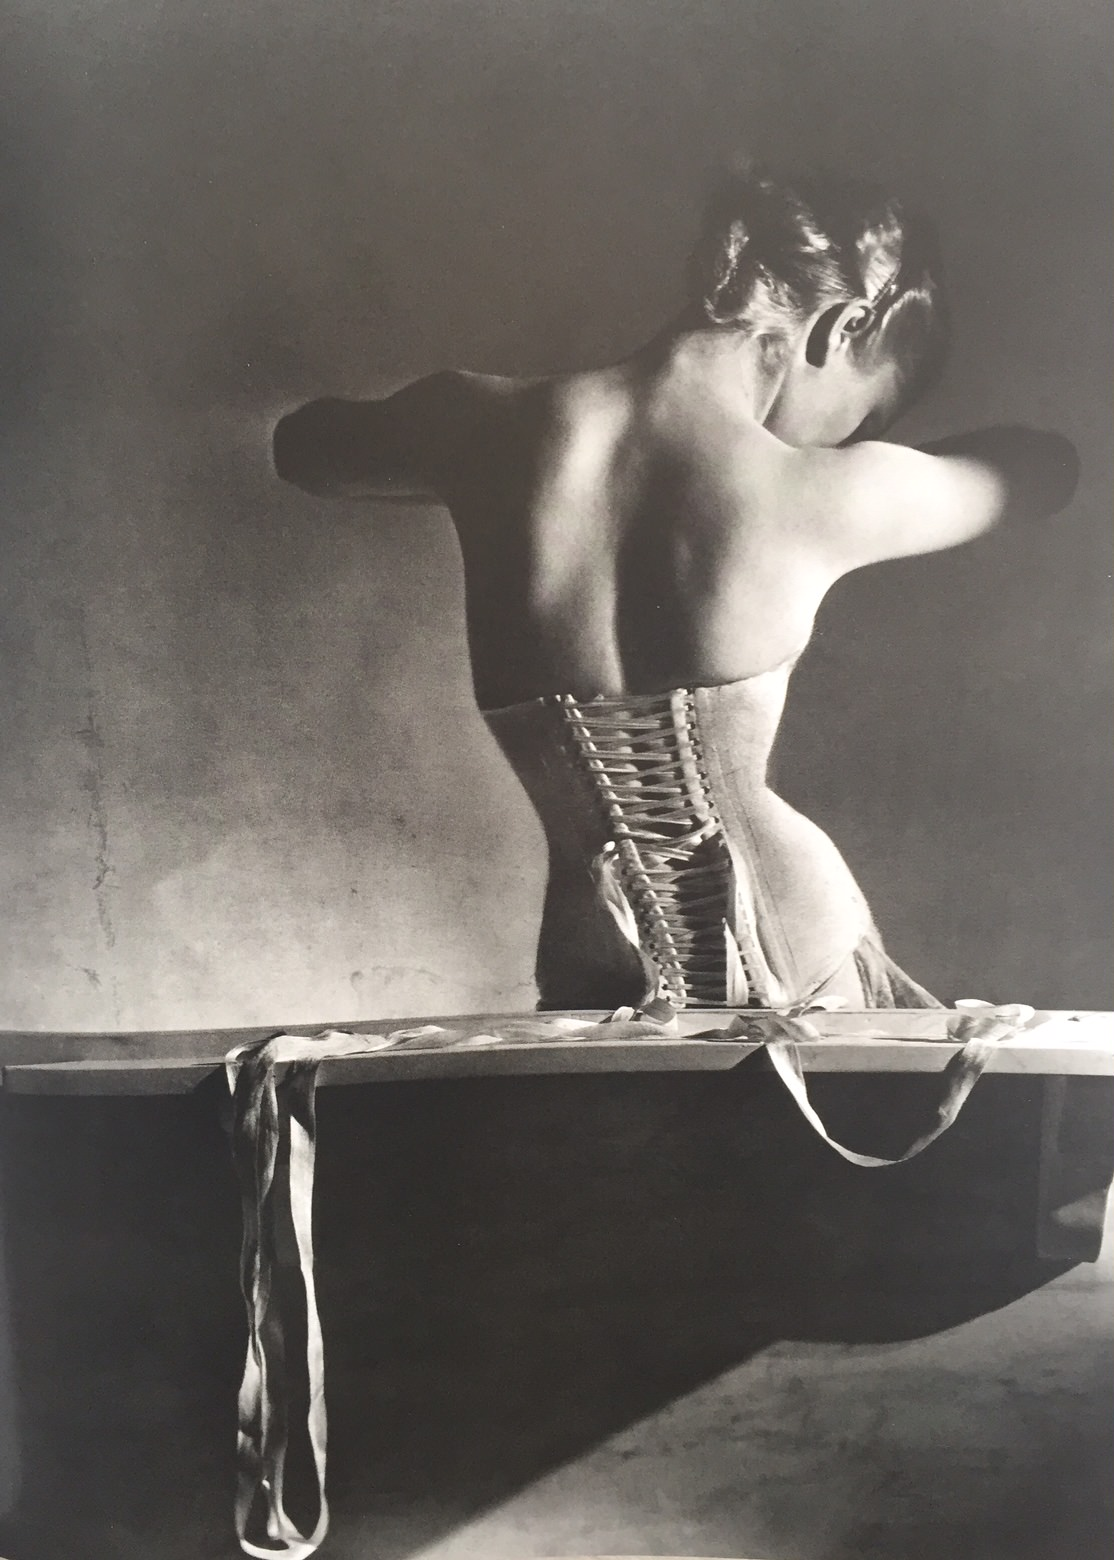 a woman with a back to the camera wearing a boned lace up corset in black and white